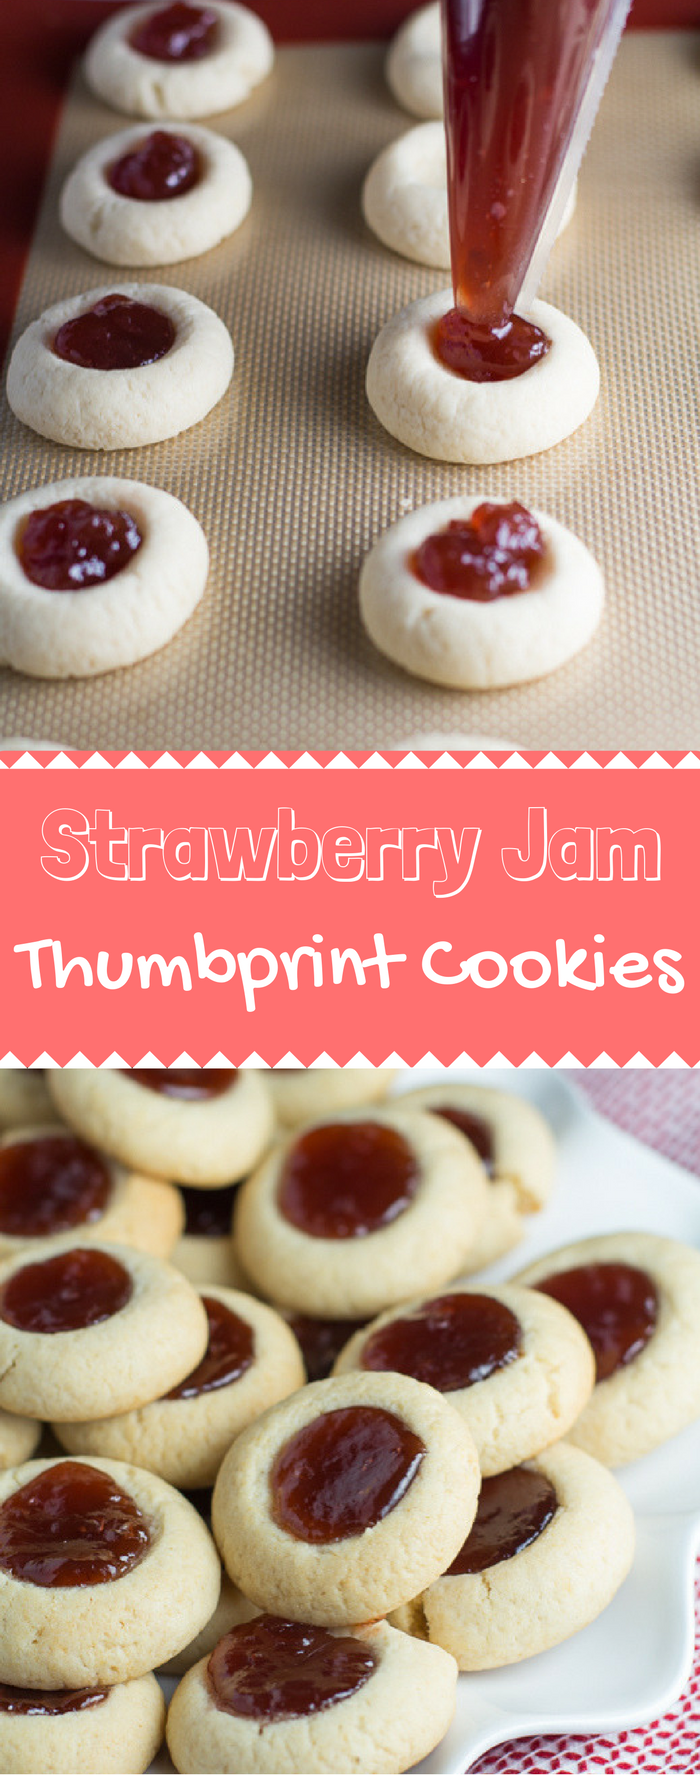 strawberry thumbprint cookies are easy, versatile, and addictive -- the possibilities are truly endless here!